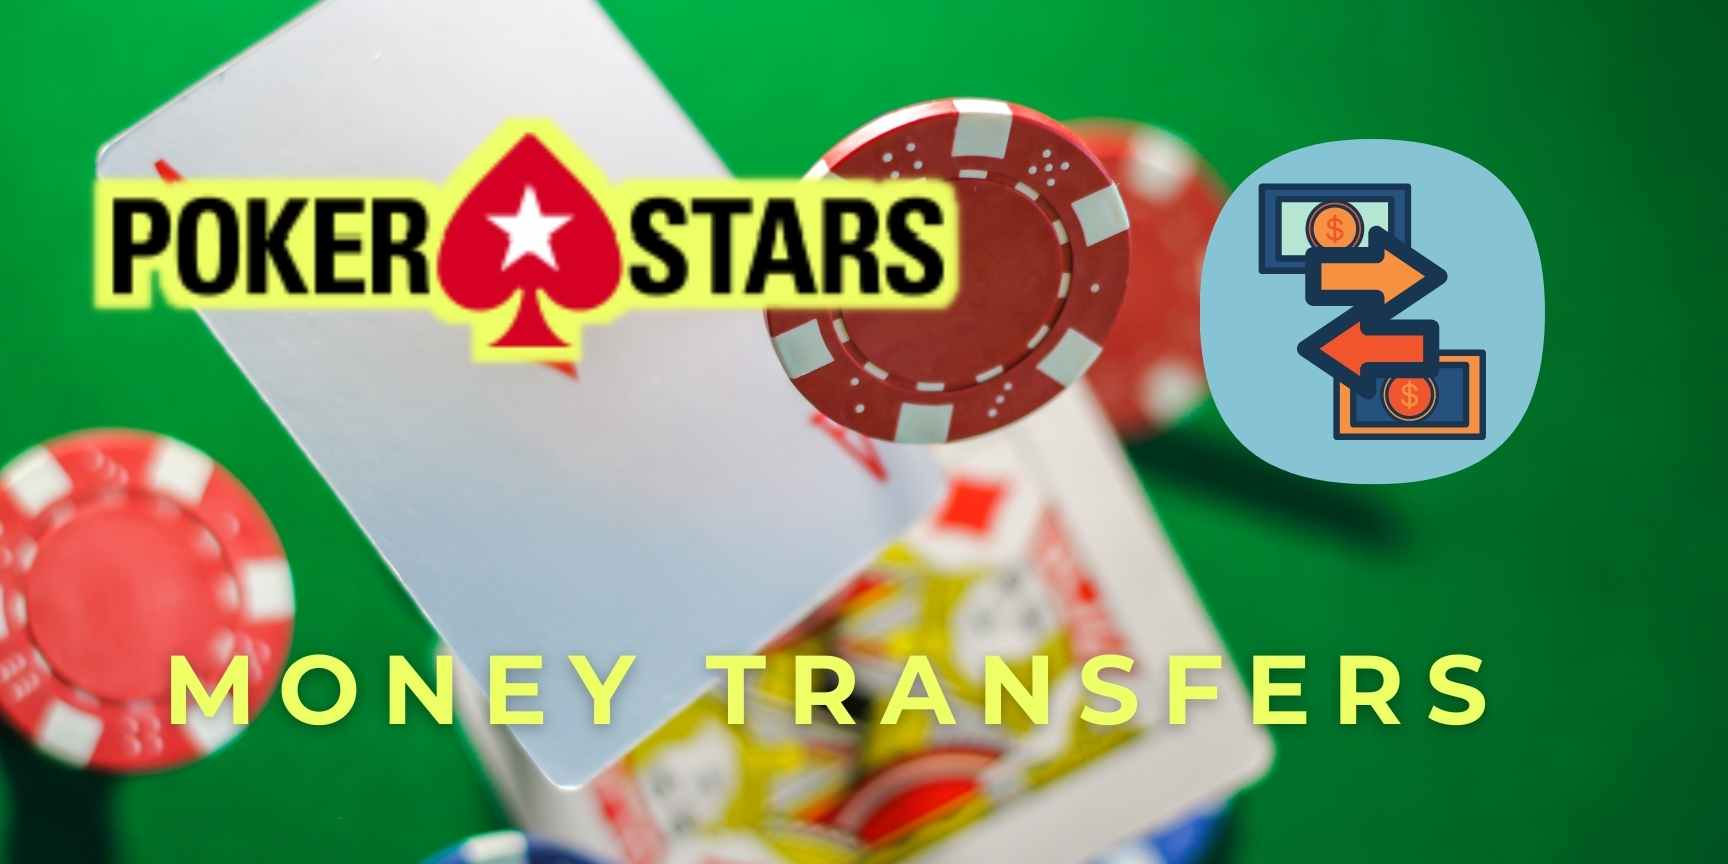 Transfers are necessary on a gambling website